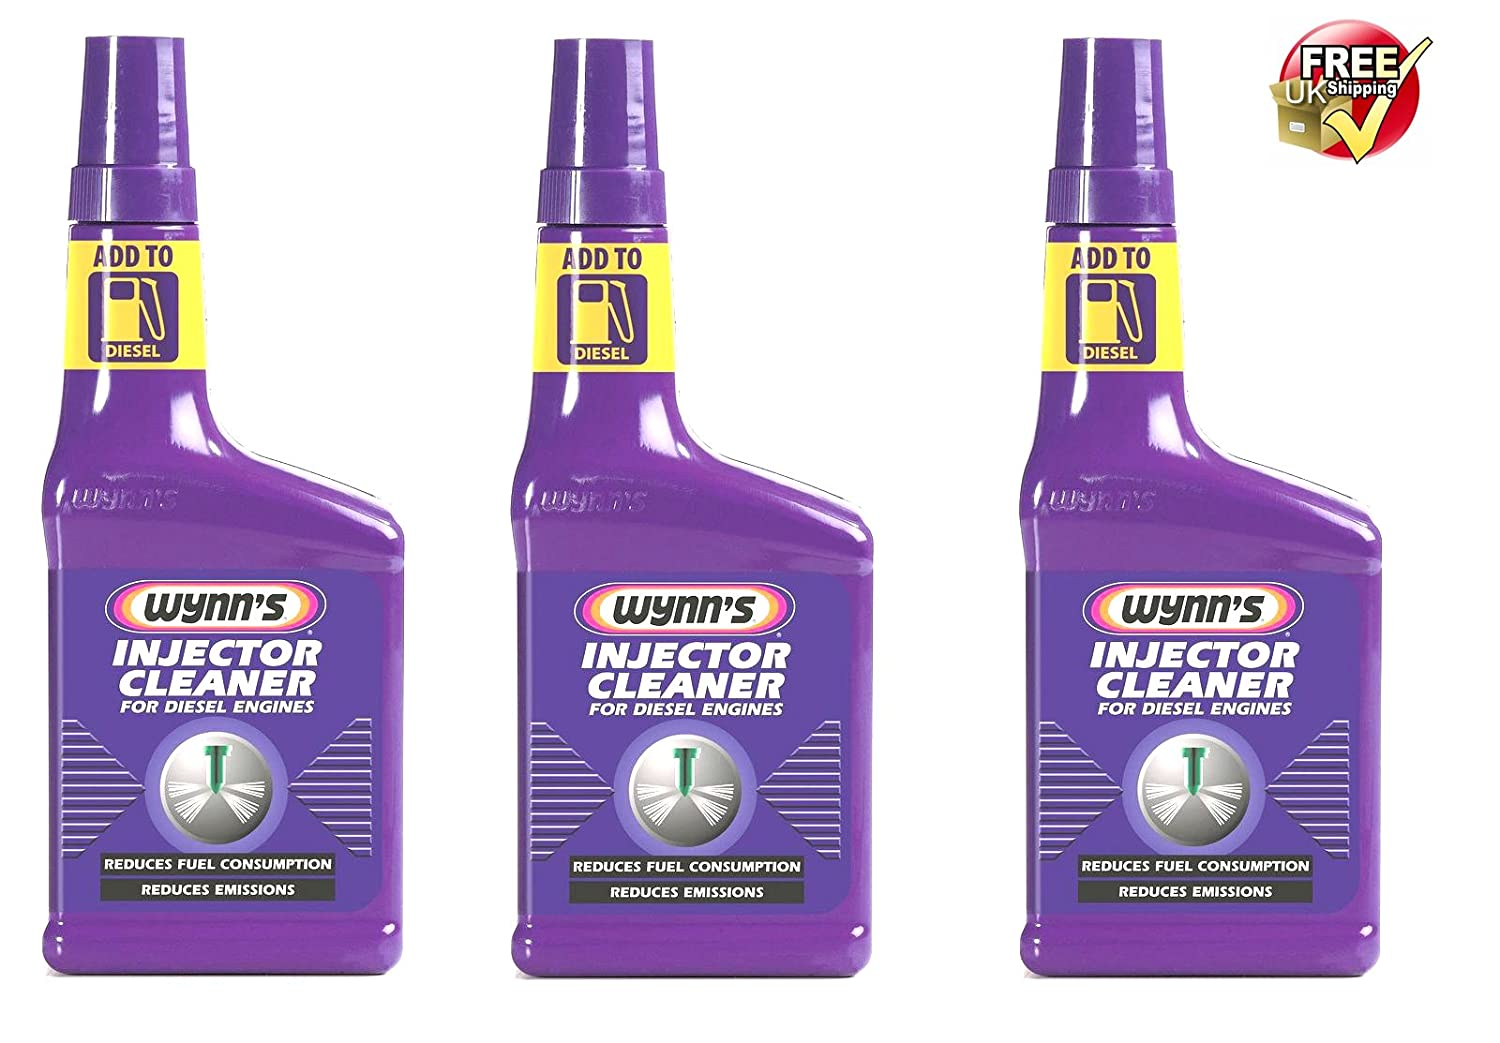 3 x WYNNS DIESEL INJECTOR CLEANER - REDUCES FUEL CONSUMPTION & EMISSIONS - 325ml UK